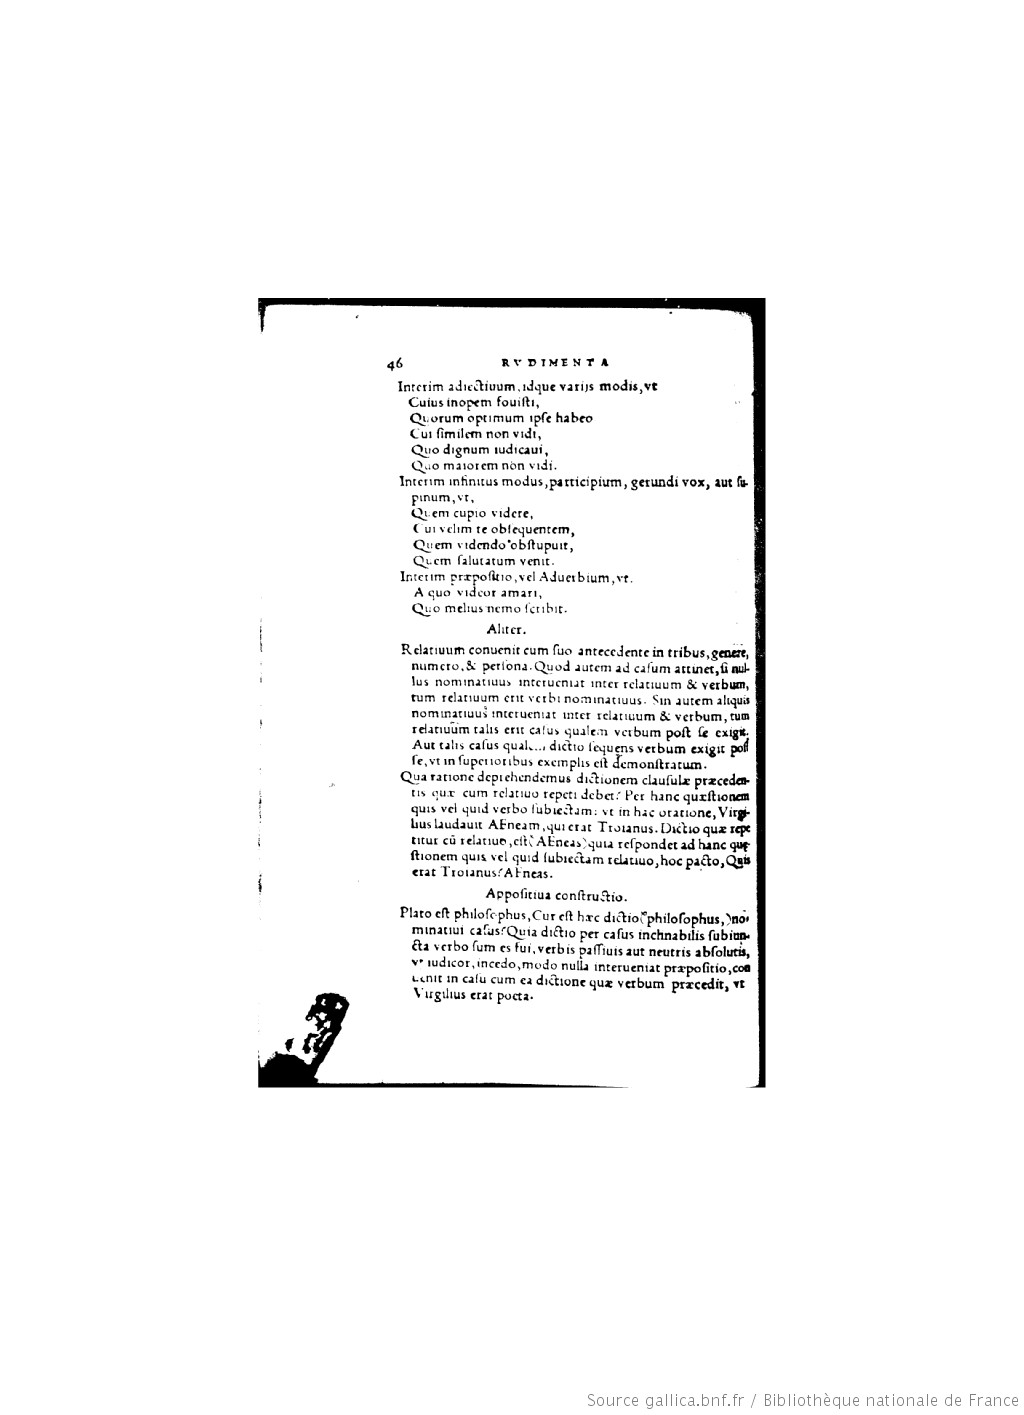 Rudimenta grammatices ([Reprod.]) / Thomae Linacri... ; interprete Georgio Buchanano...